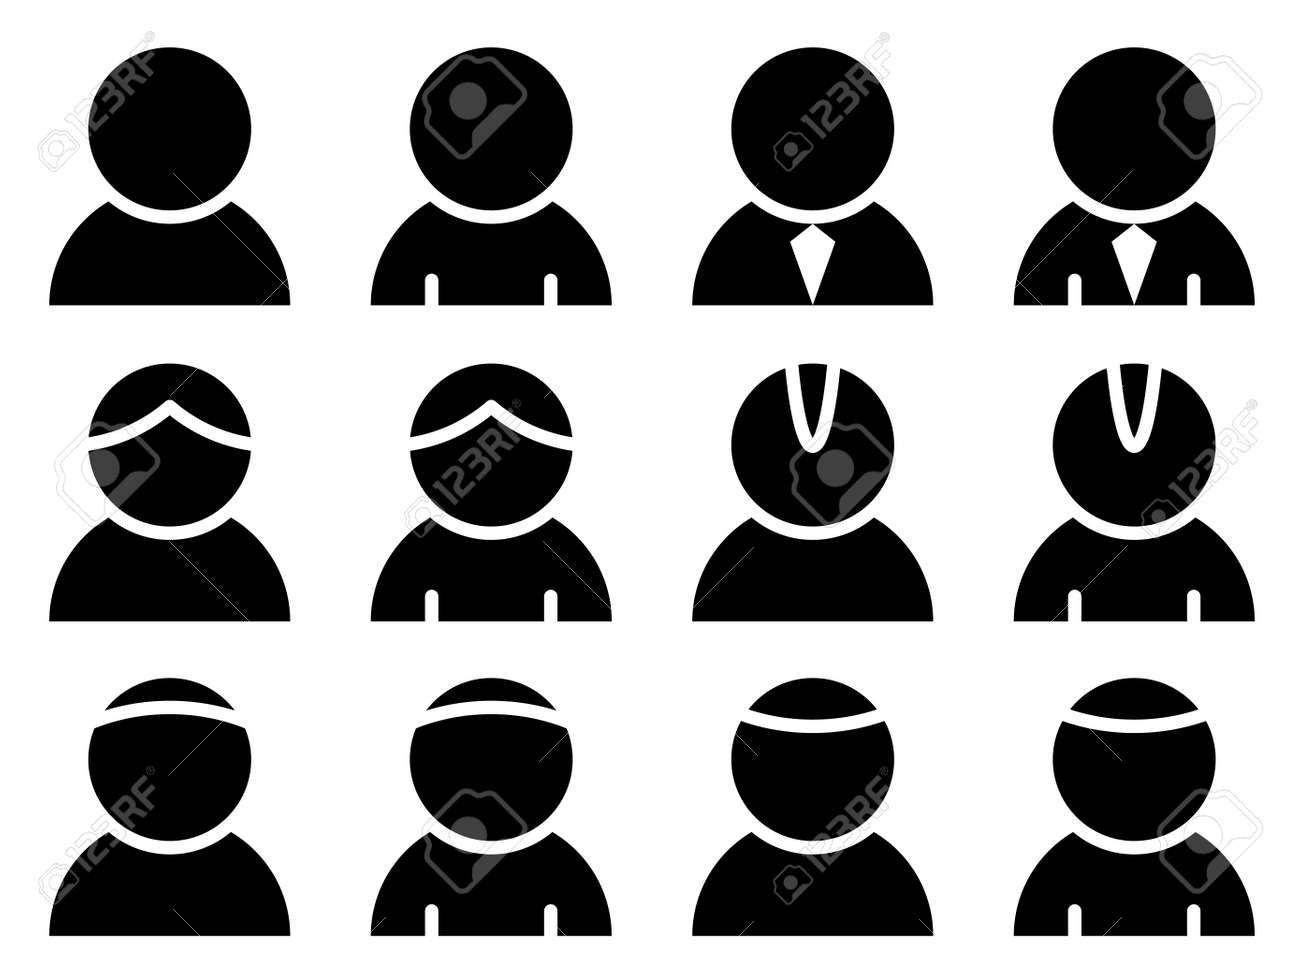 vector black person icons royalty free cliparts vectors and stock rh 123rf com Business People Icon Set Generic Person Icon